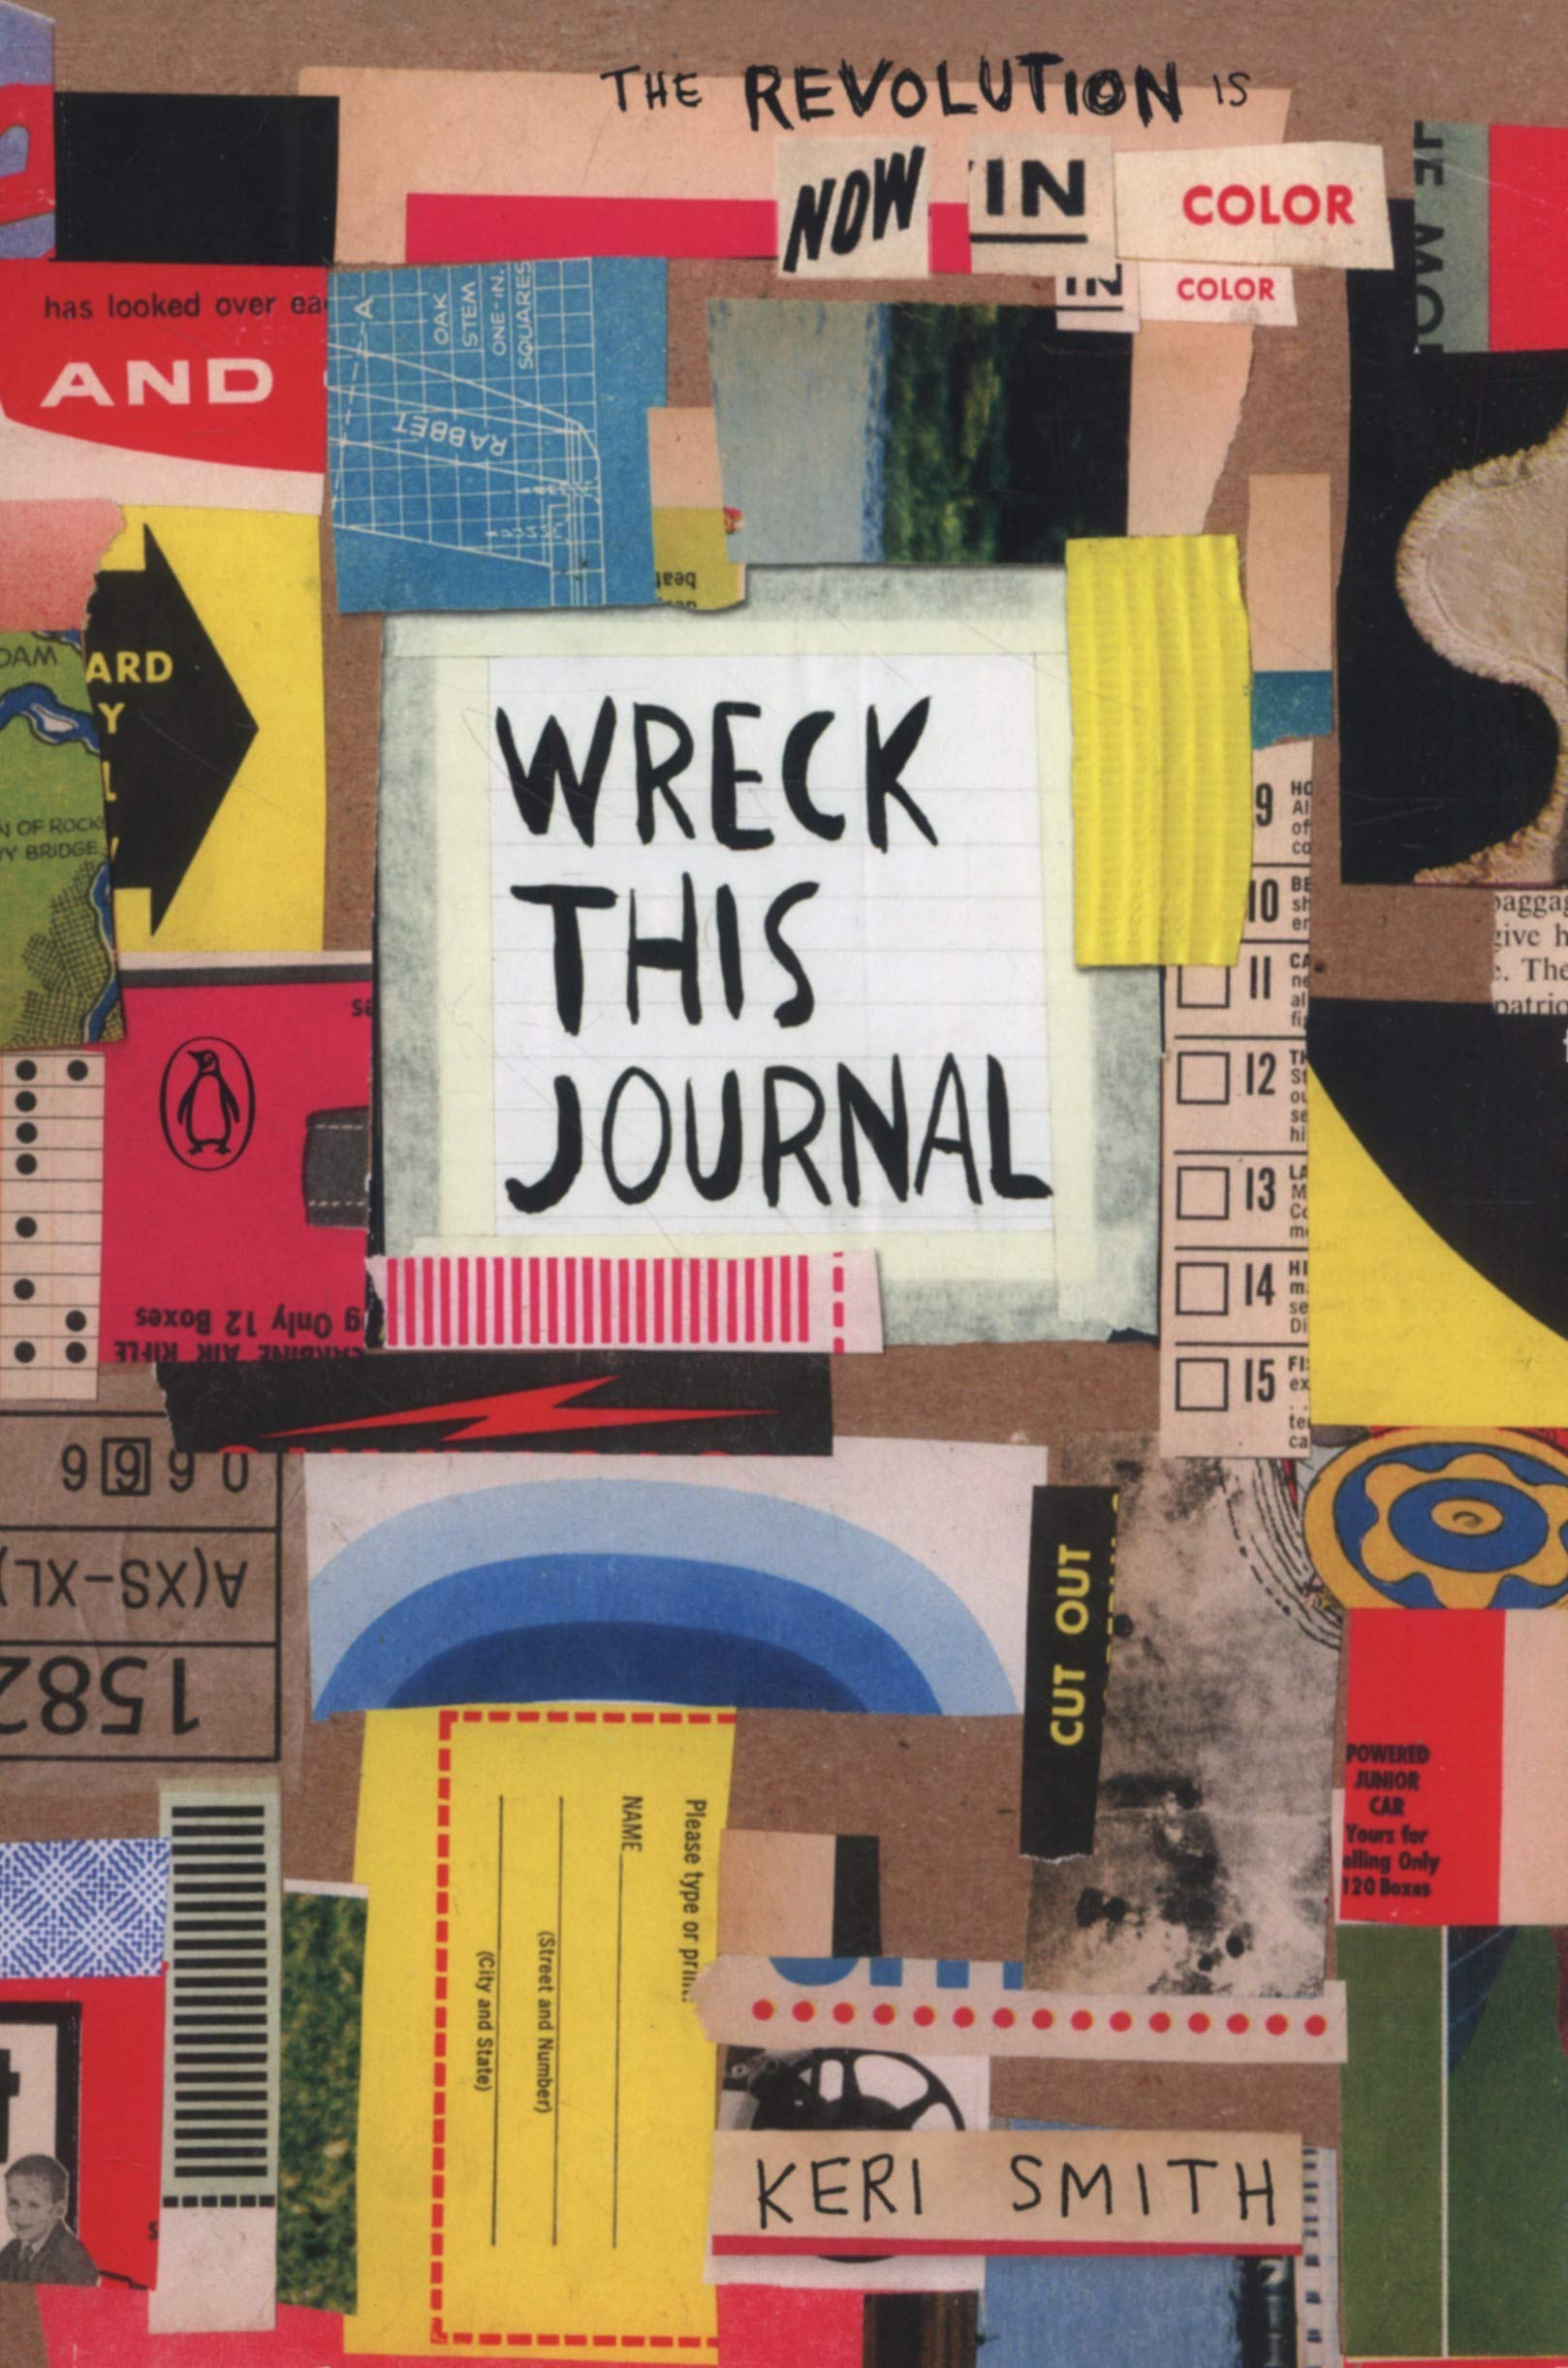 Wreck This Journal. Now In Colour: Amazon.es: Keri Smith: Libros ...